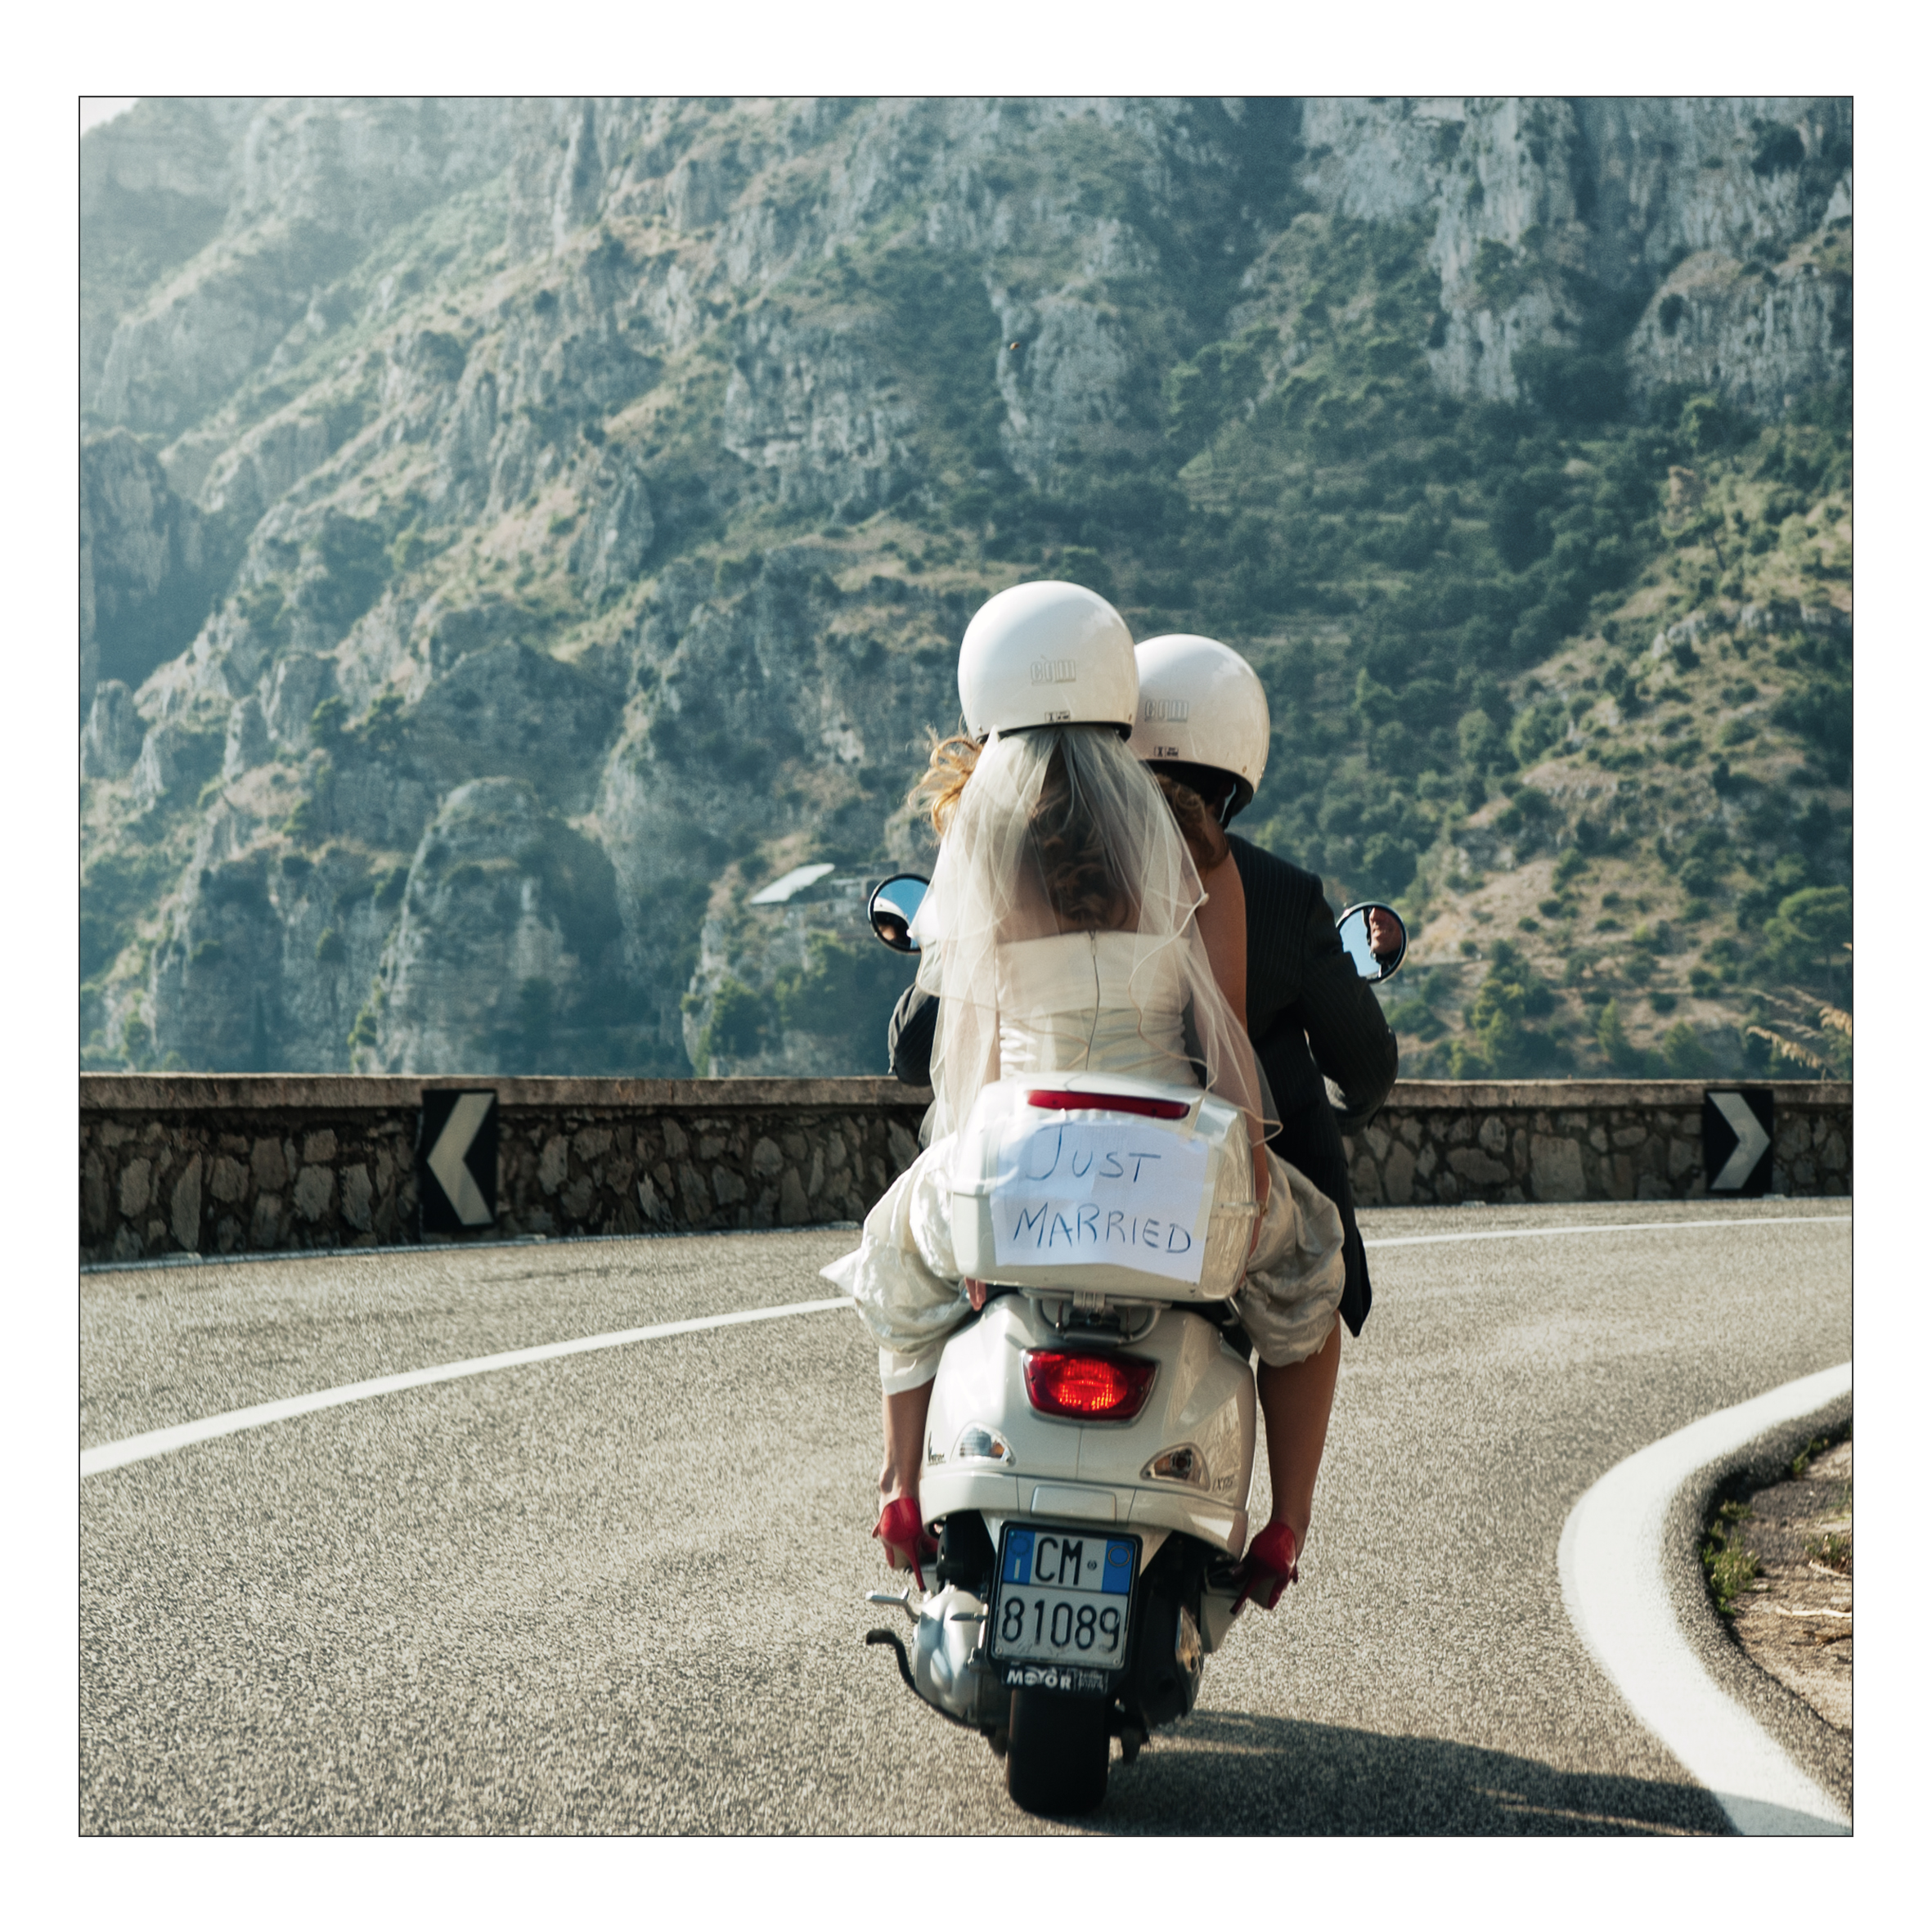 Honeymoon bound, bride and groom make their getaway on the Amalfi Coast, Italy | Confetti.co.uk